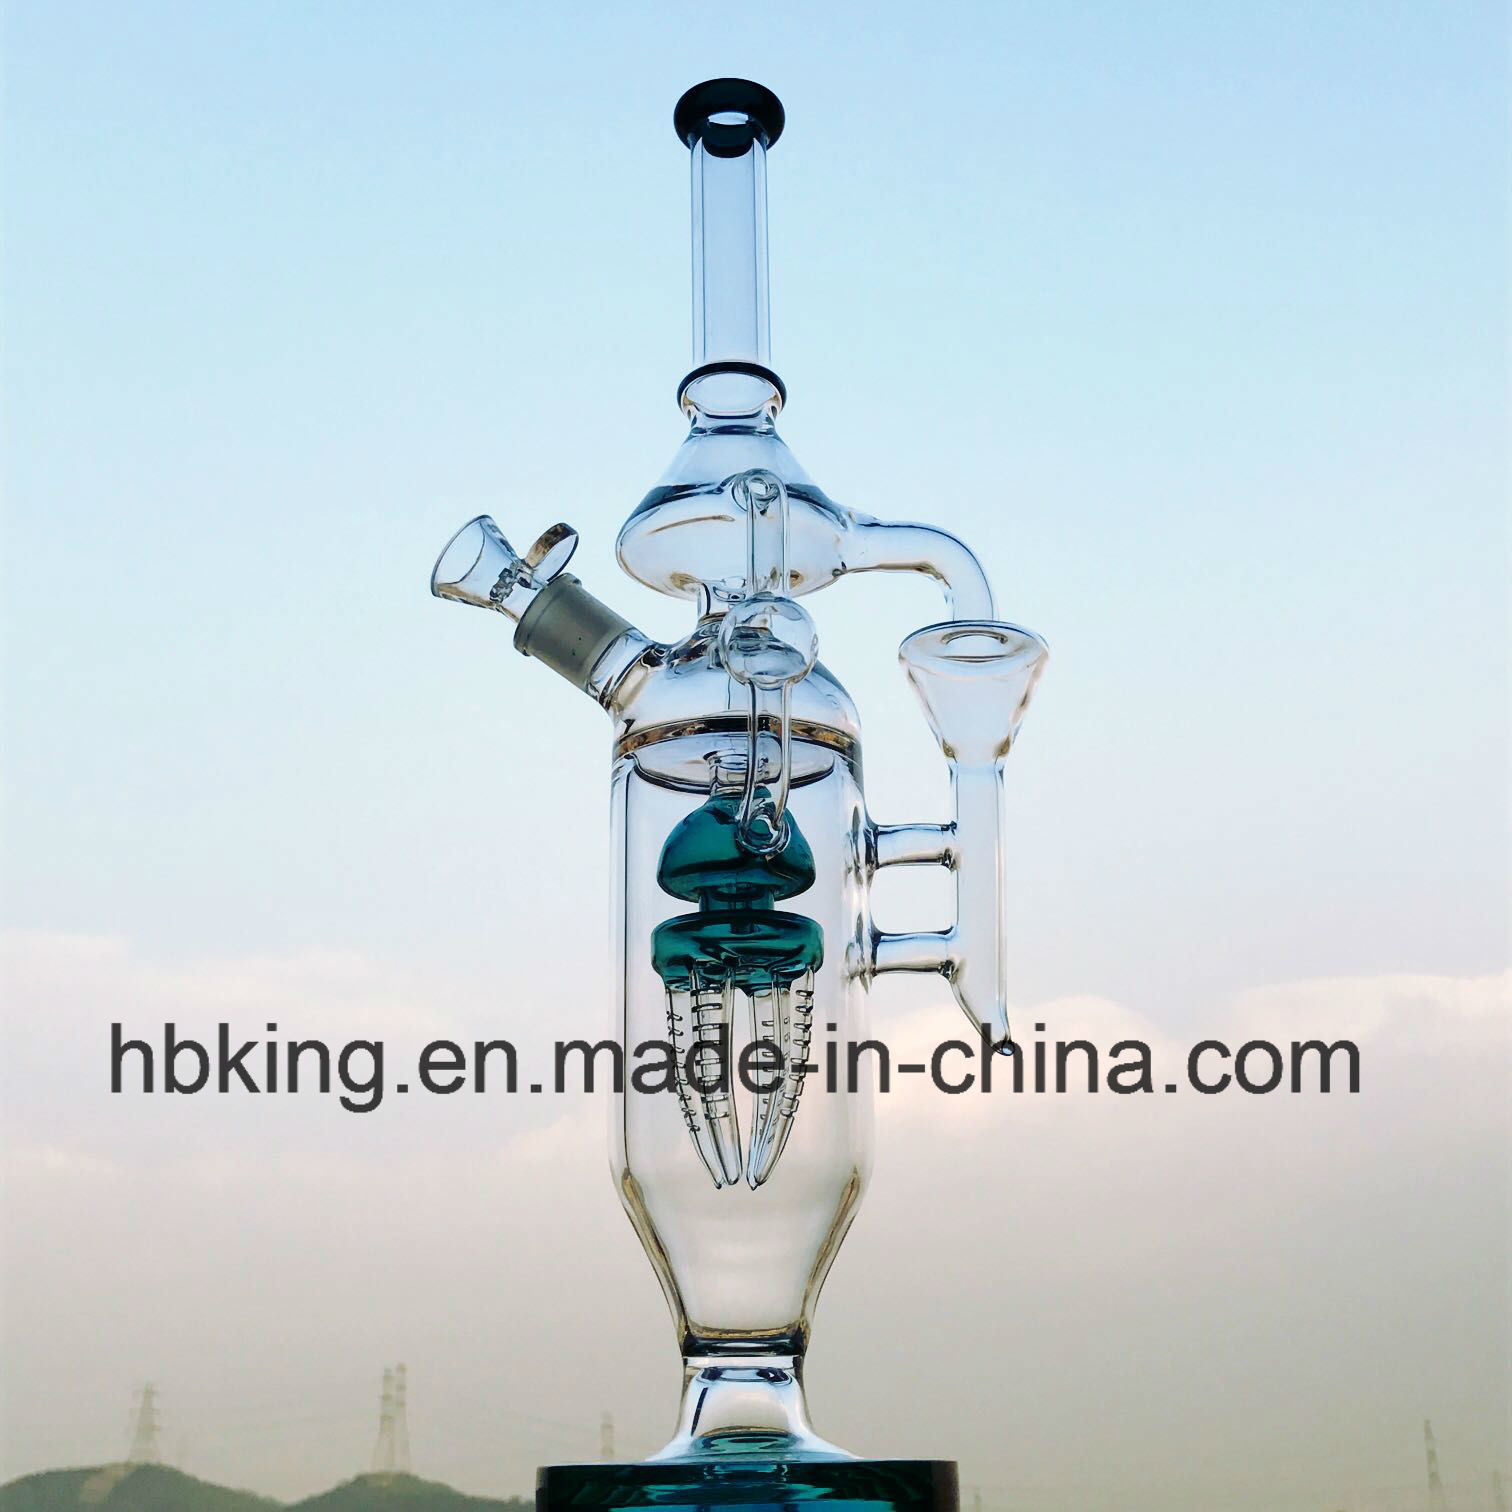 "15"" Hbking Thick Glass Water Pipe Borosilicate Glass Water Pipe Inliner Rocket Perc Smoking Pipe Microscope Fashion Design Top Selling Waterpipes"